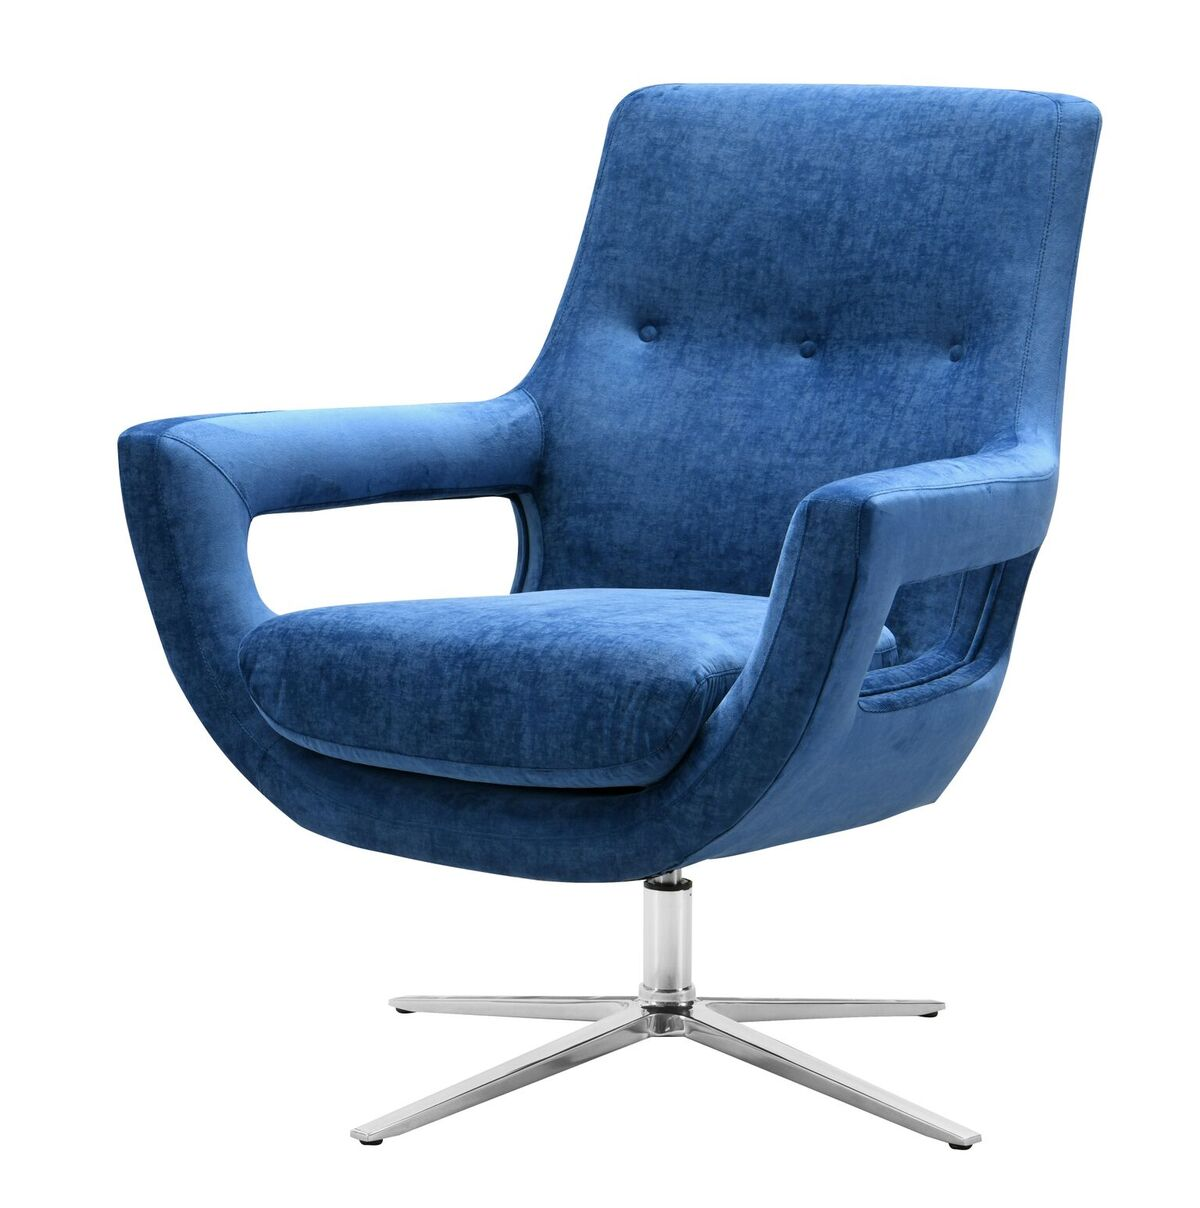 Strange Fifi Navy Blue Swivel Chair By Tov Furniture Unemploymentrelief Wooden Chair Designs For Living Room Unemploymentrelieforg